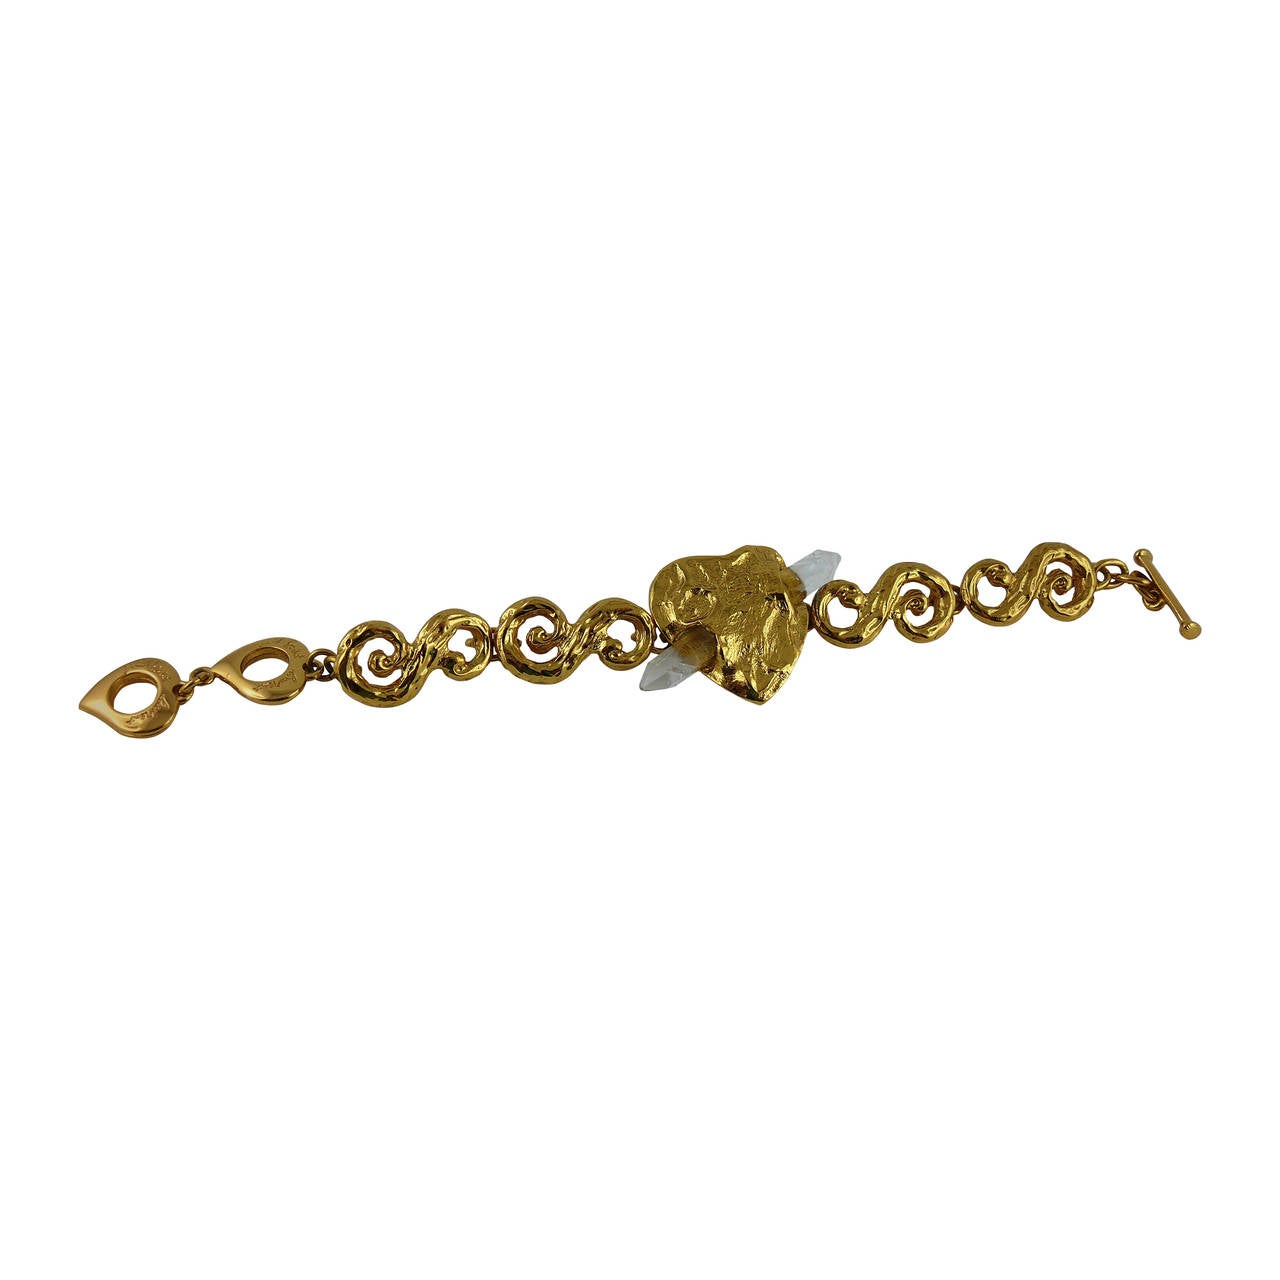 Yves saint laurent ysl vintage goossens gold heart and rock crystal prism bracelet for sale at - Bracelet yves saint laurent ...